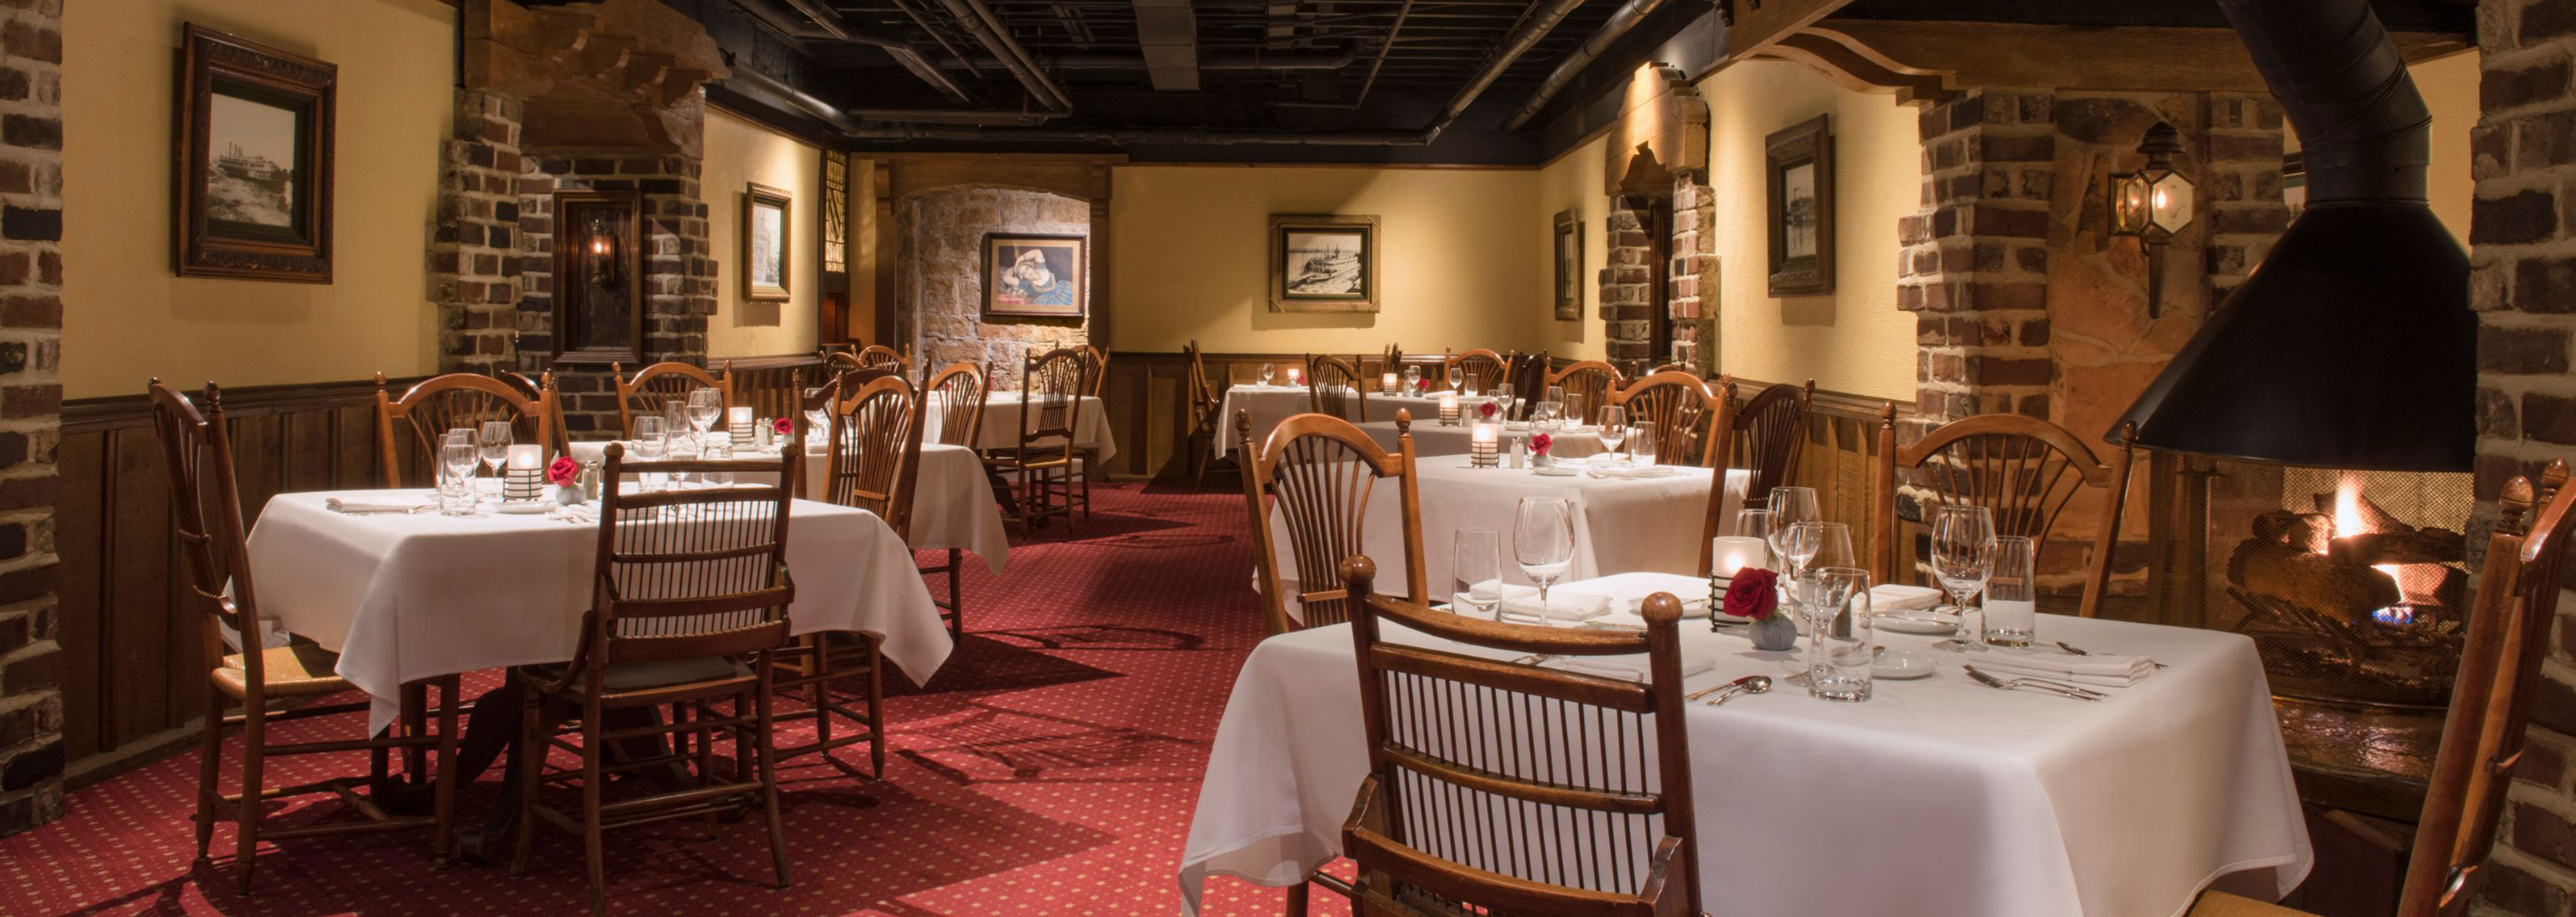 Image of Event Space St. James Hotel, 1875, Member of Historic Hotels of America, in Red Wing, Minnesota, Taste